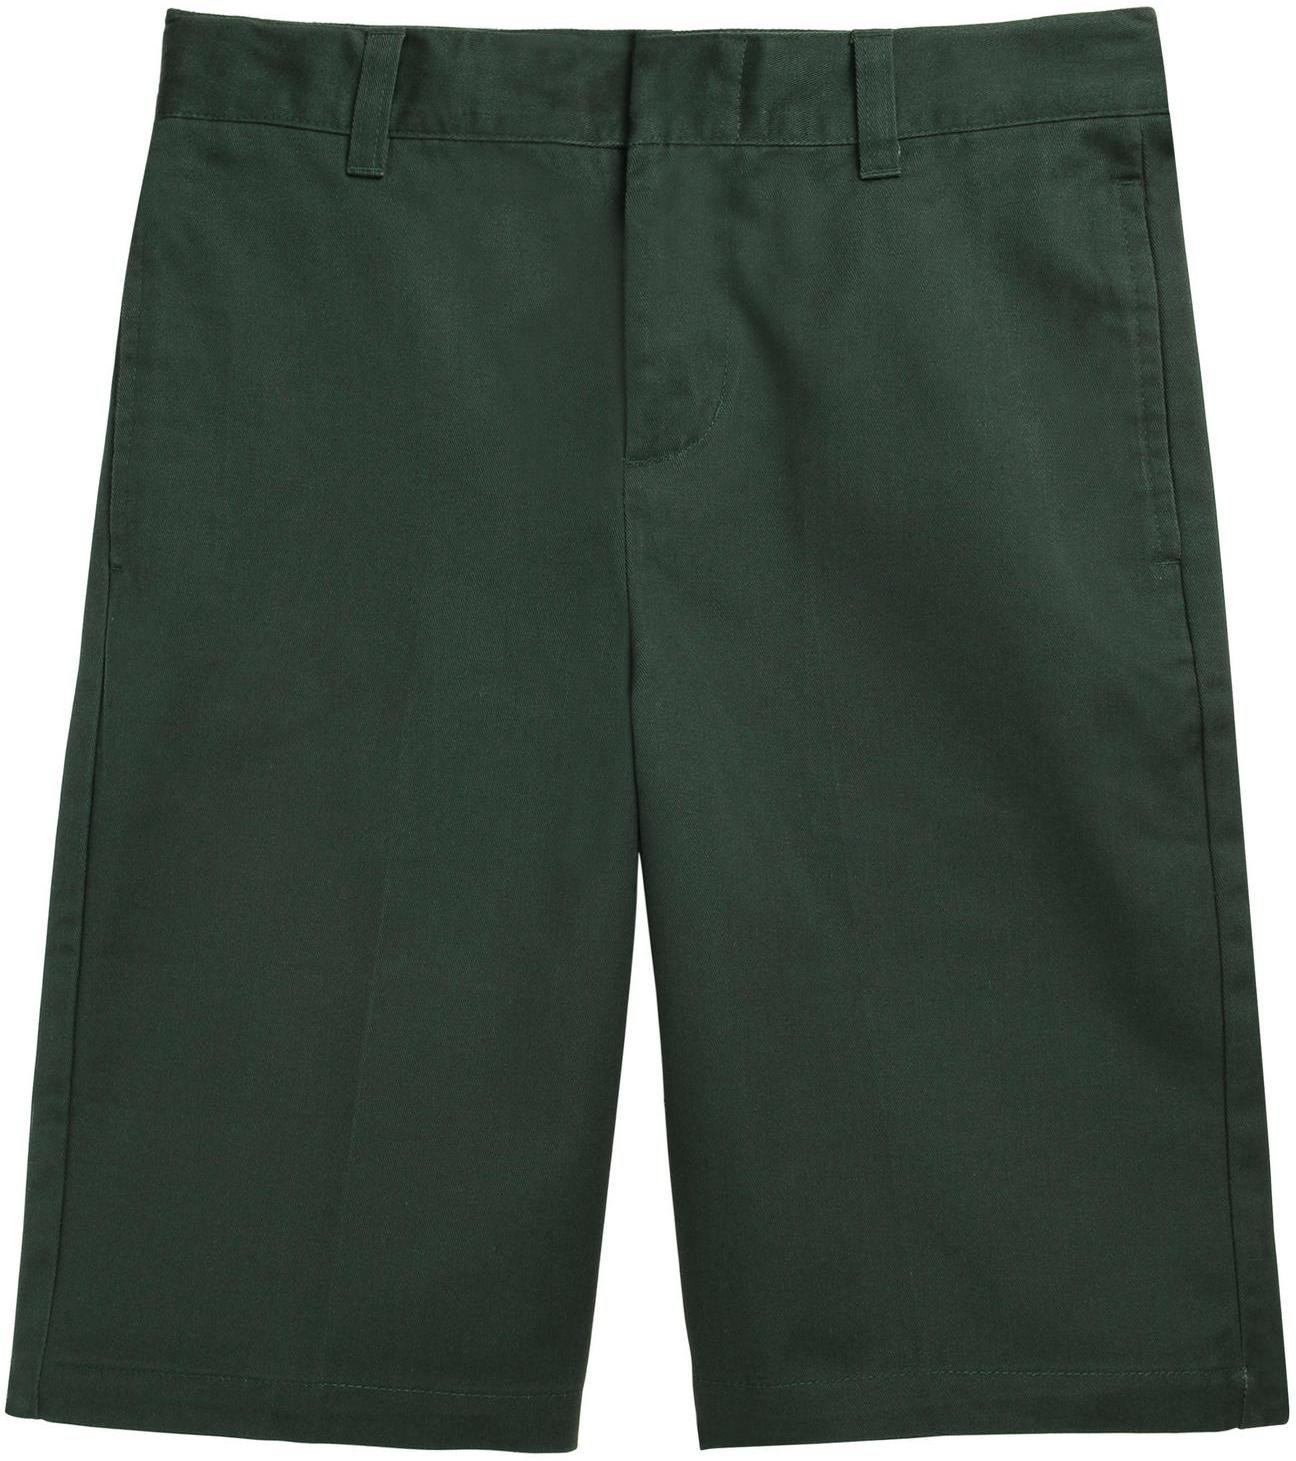 French Toast School Uniform Boys Flat Front Adjustable Waist Shorts, Hunter Green, 16